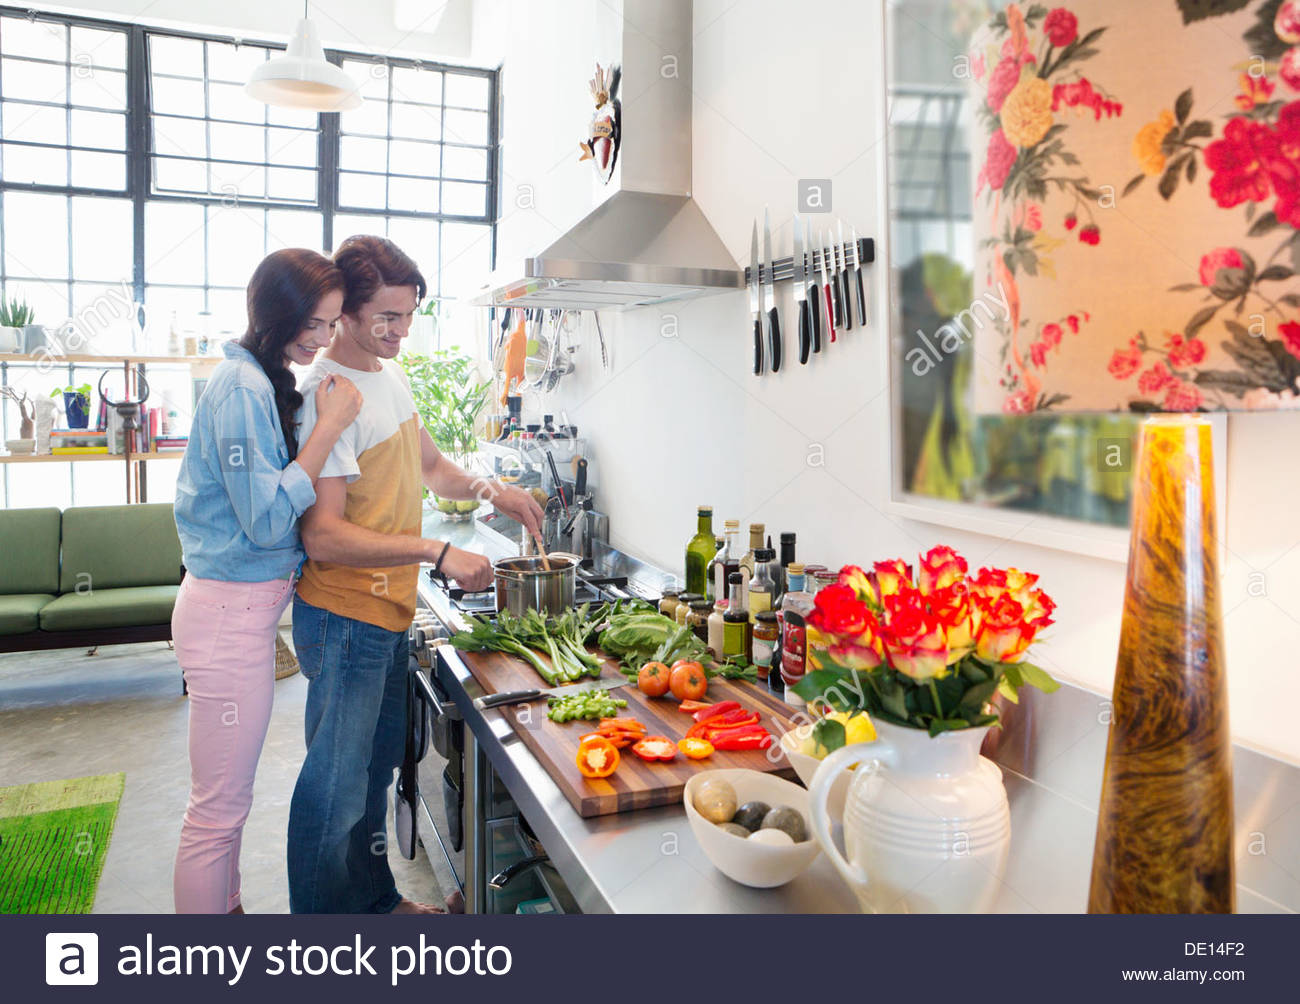 Couple cooking at stove in kitchen - Stock Image